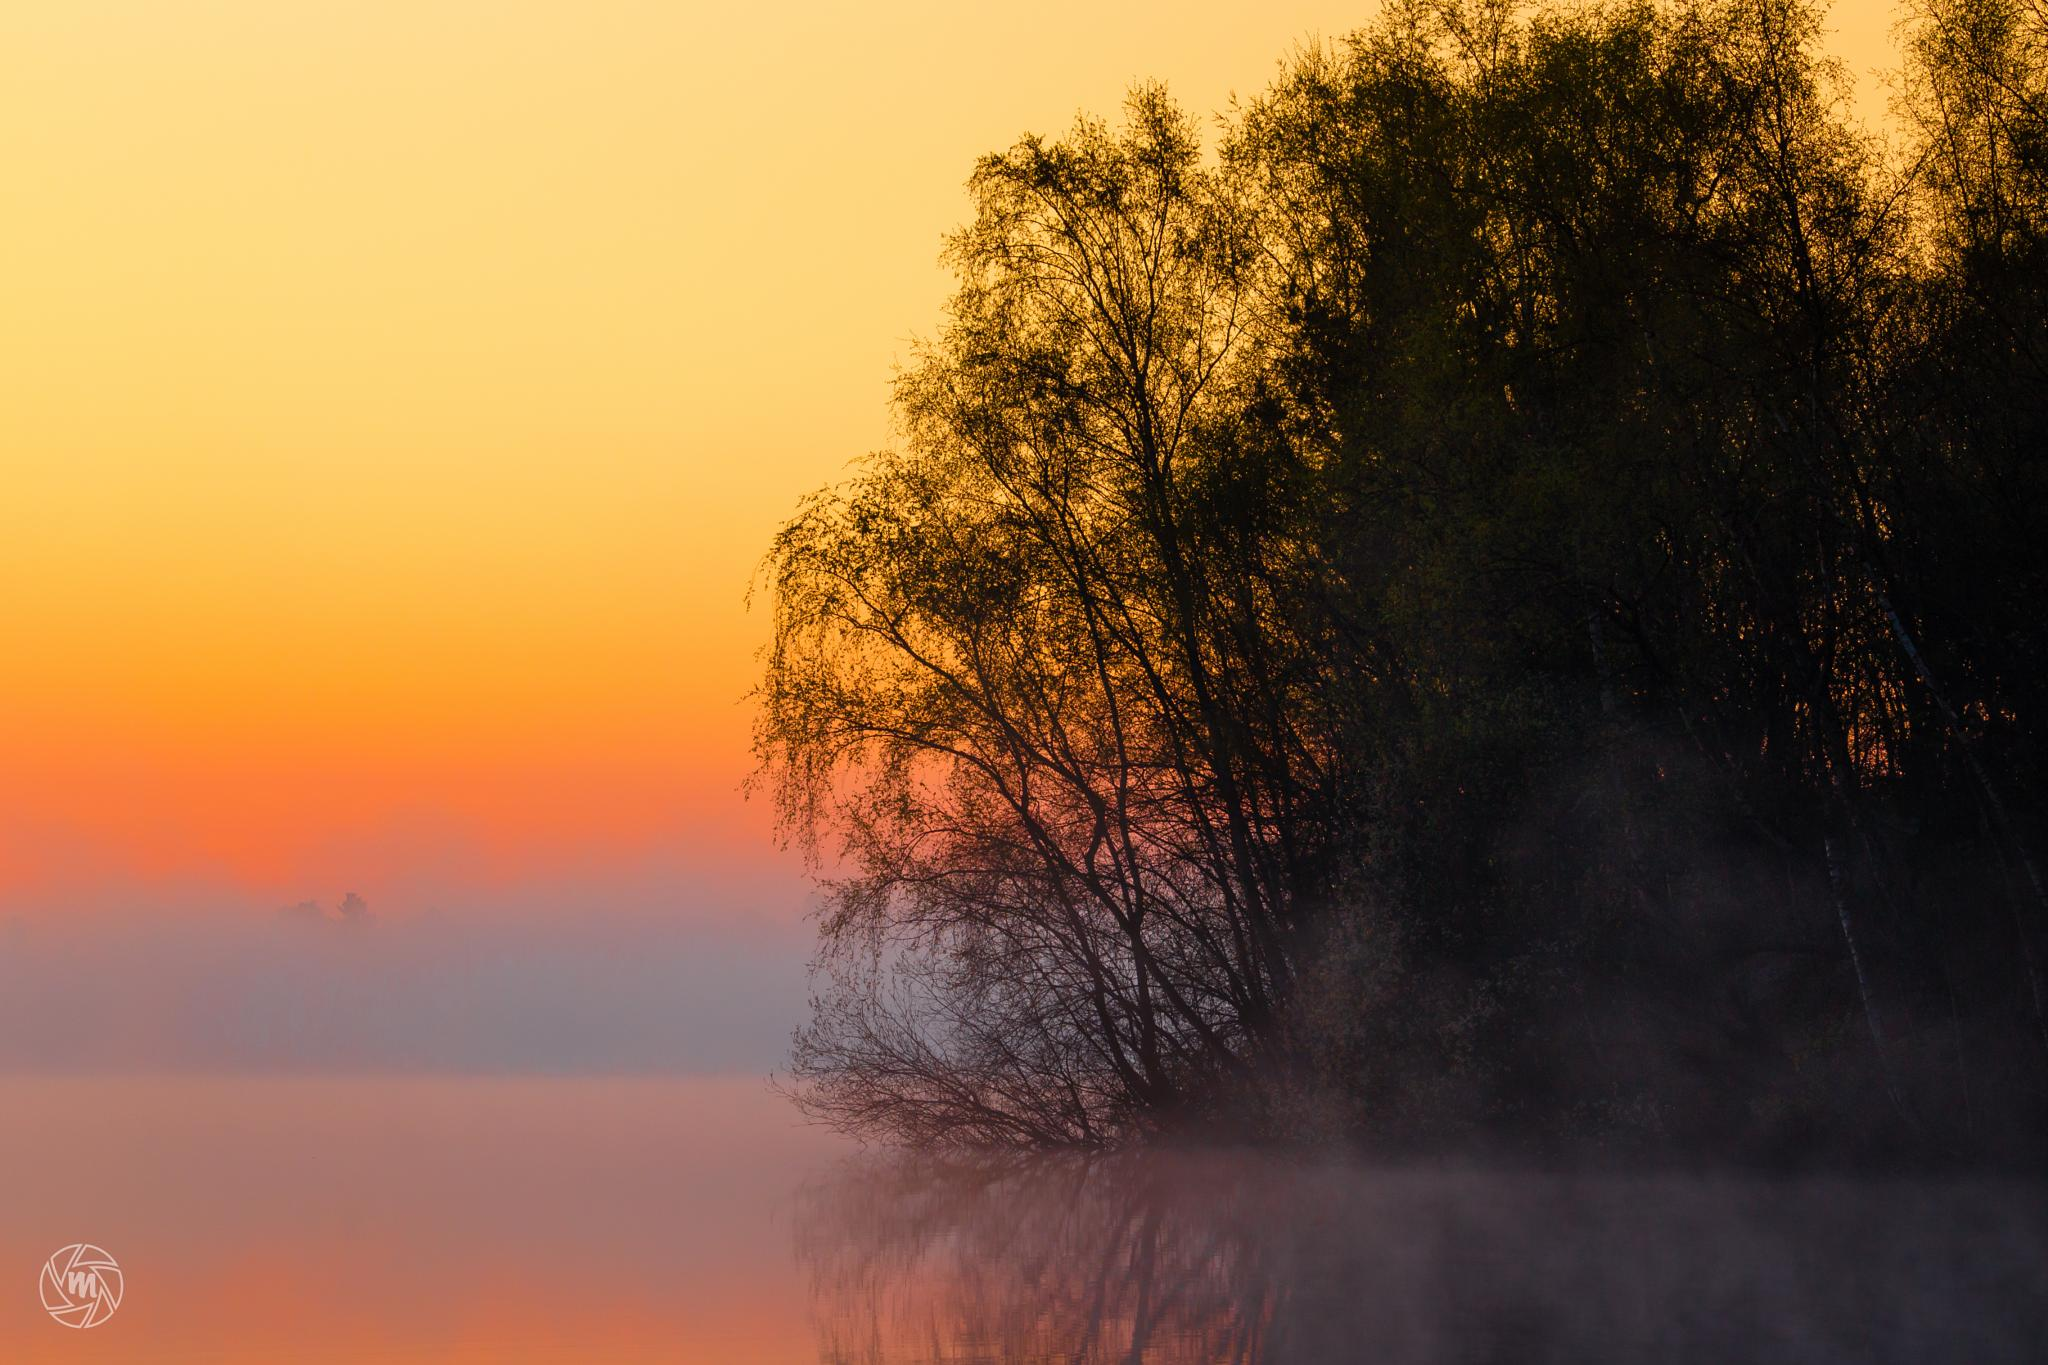 Foggy Sunrise Silhouettes by William Mevissen